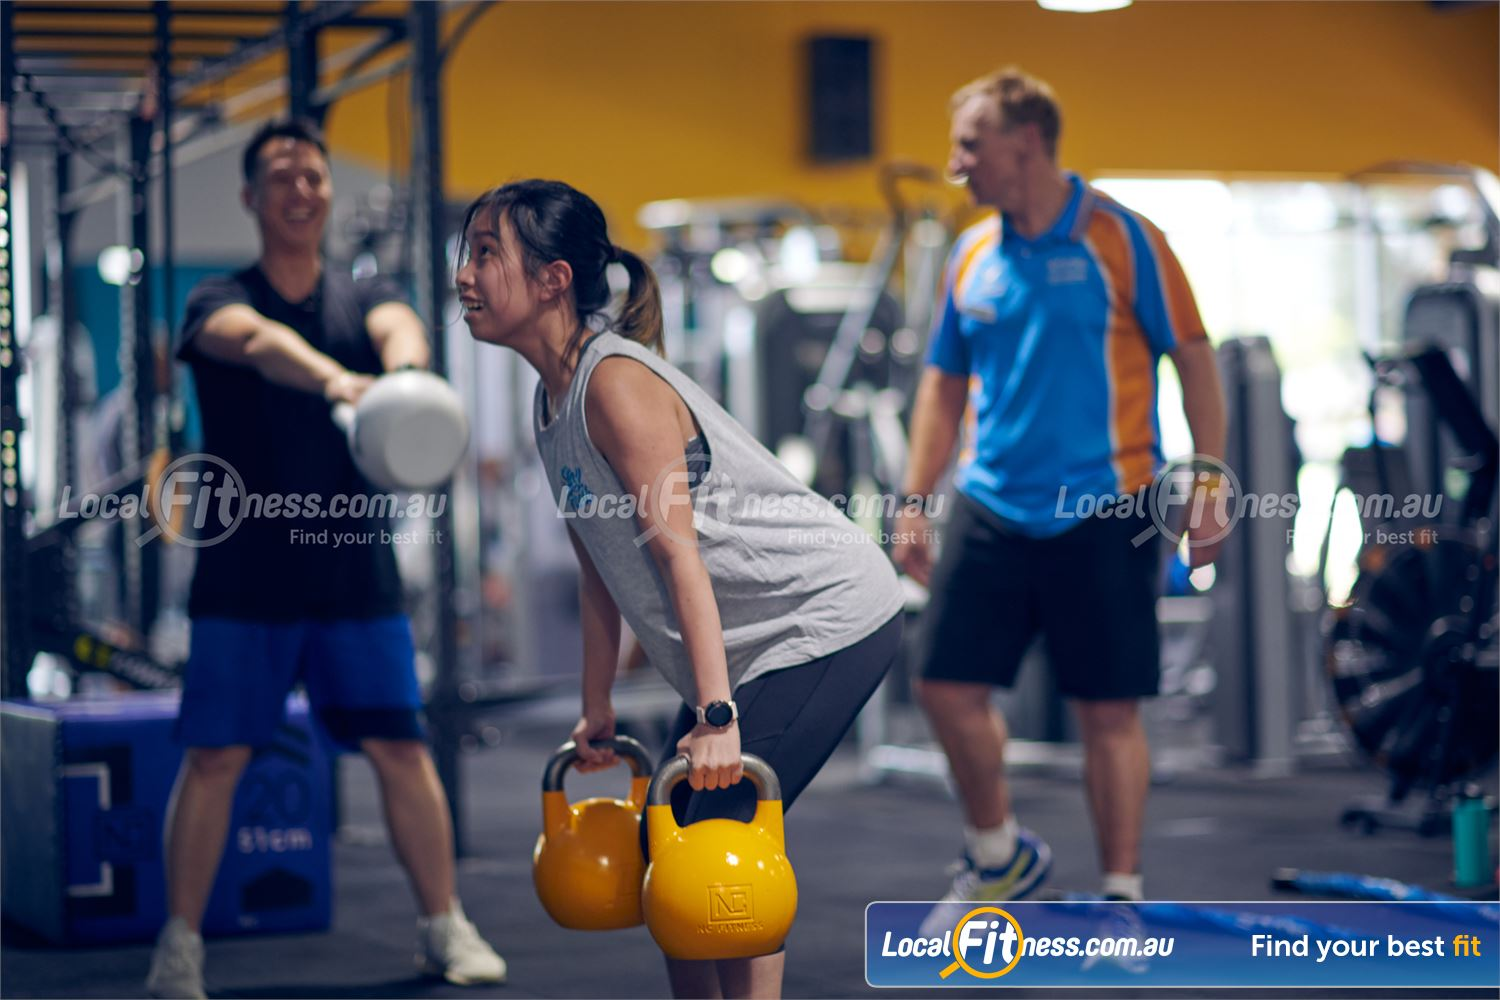 Knox Leisureworks Boronia Get a high intensity workout with our HIIT classes.